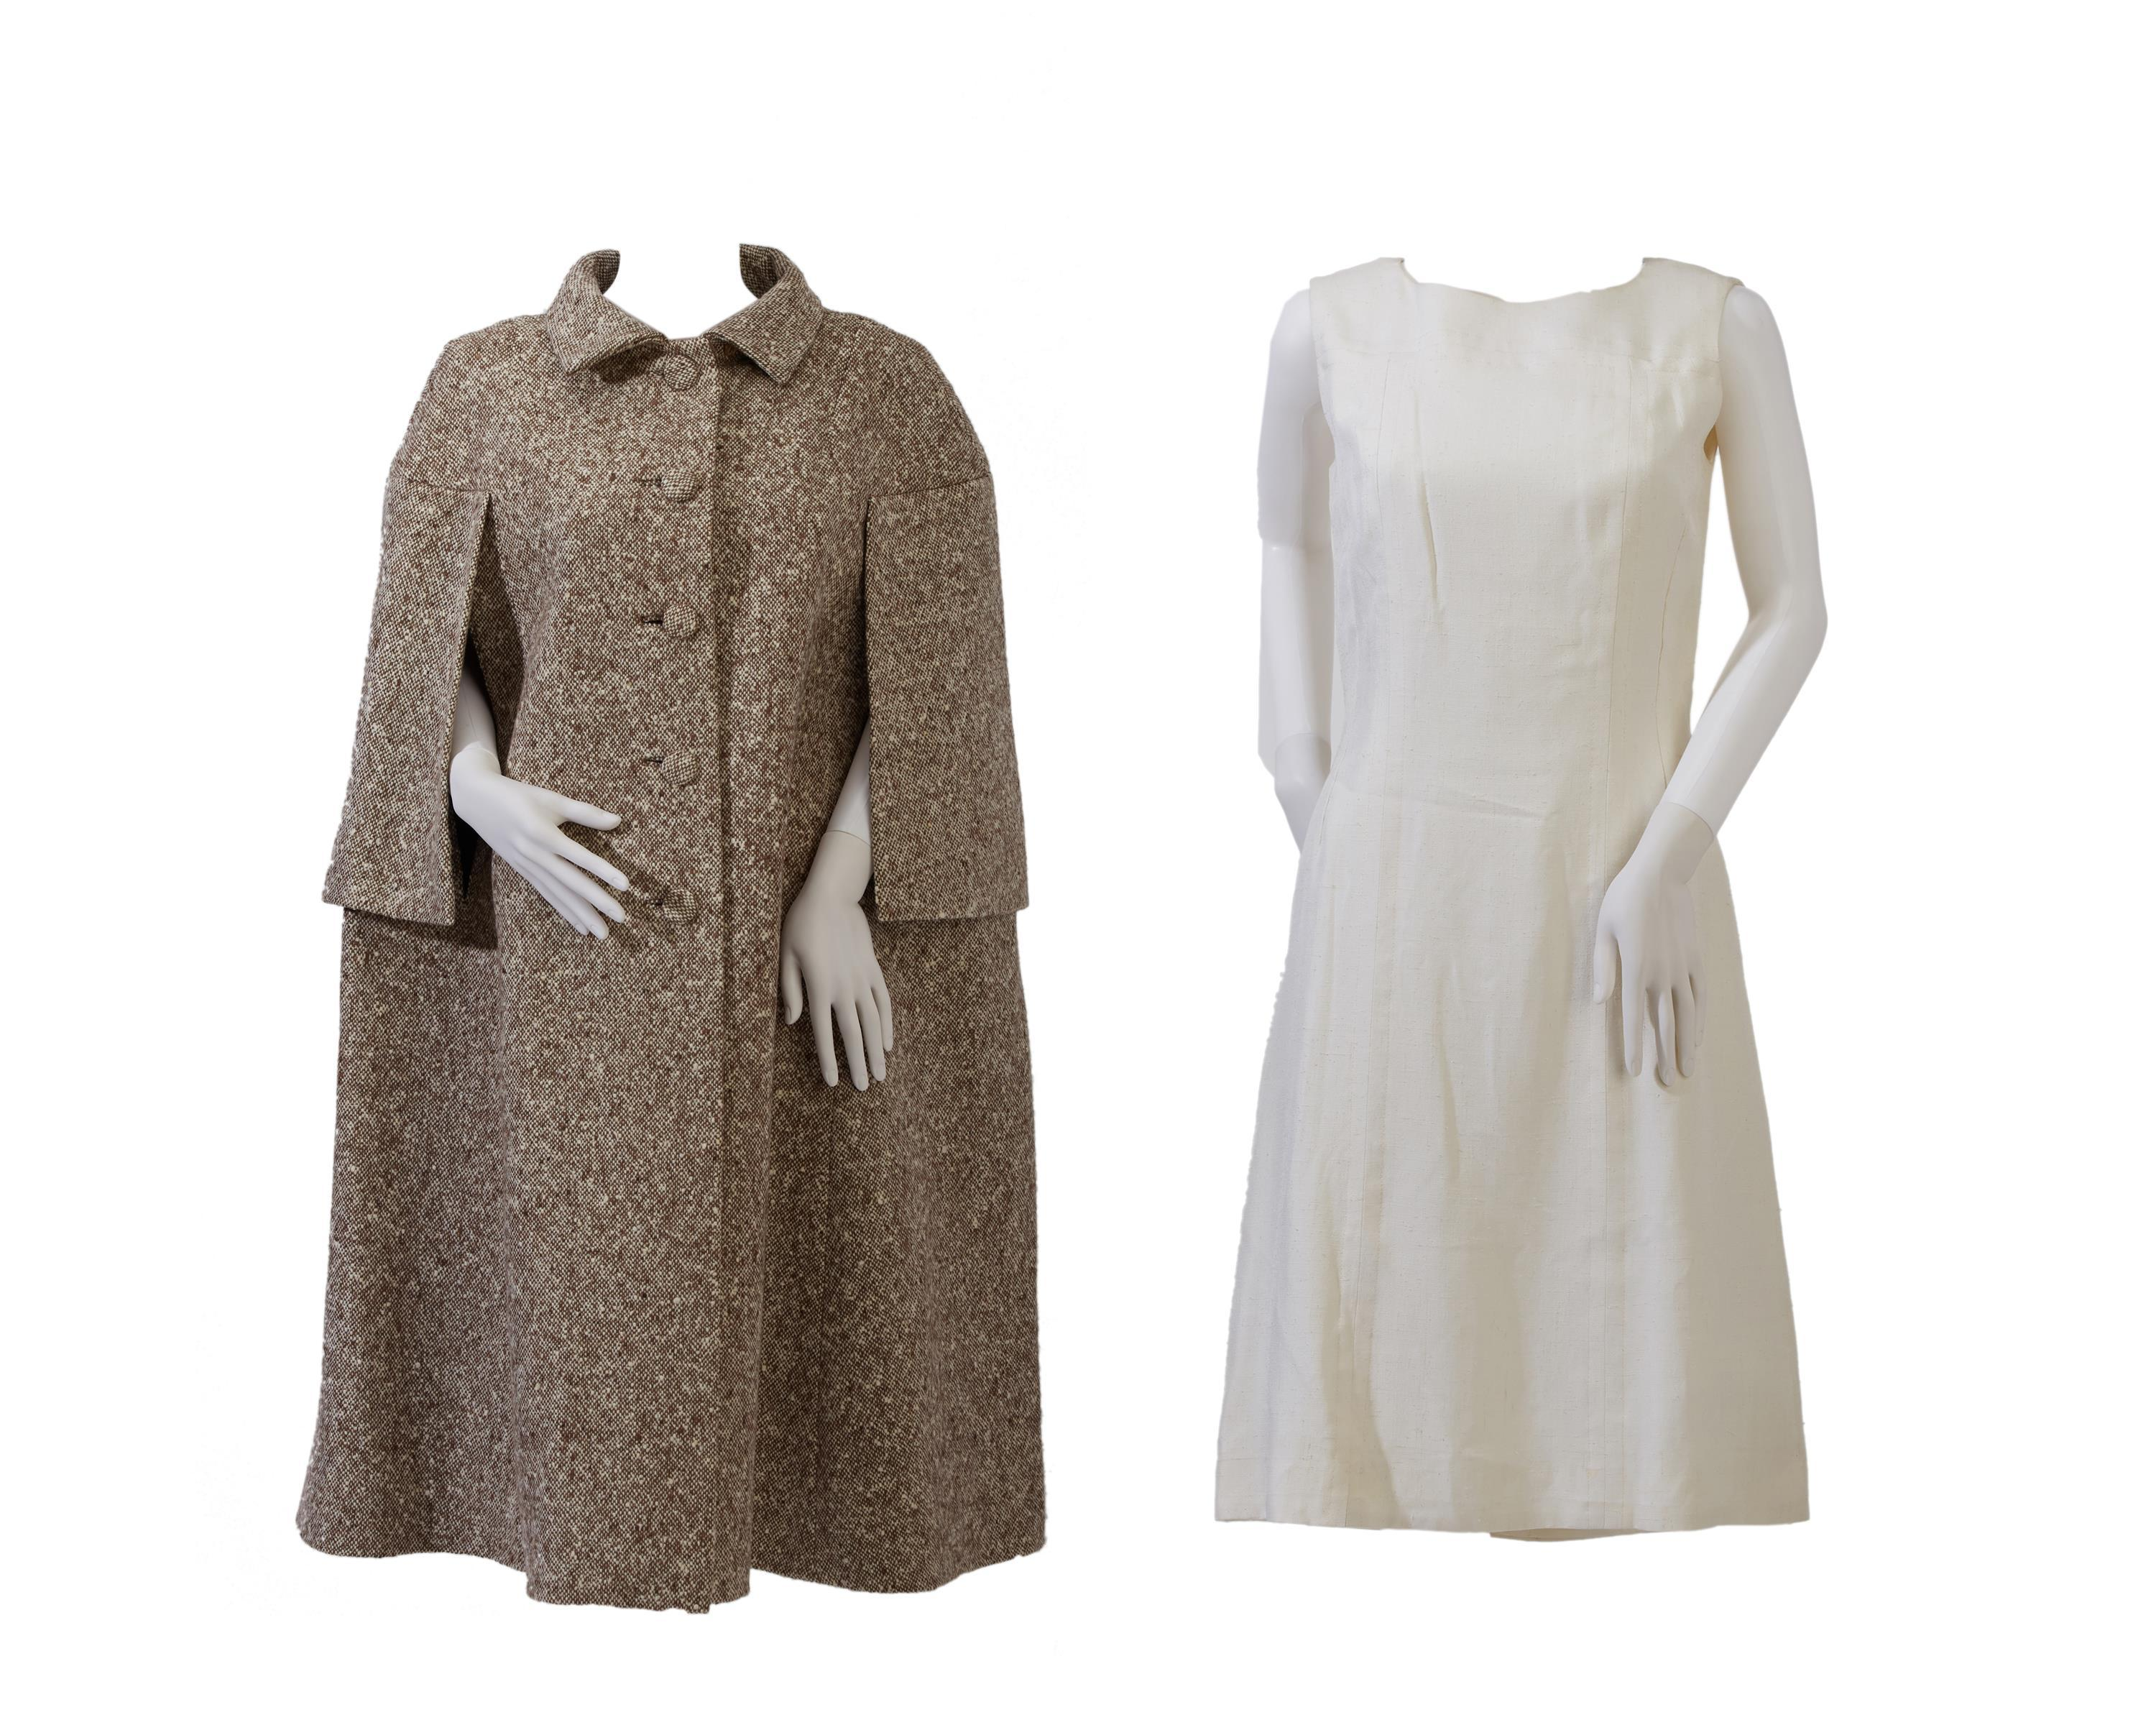 Two Sybil Connolly clothing items